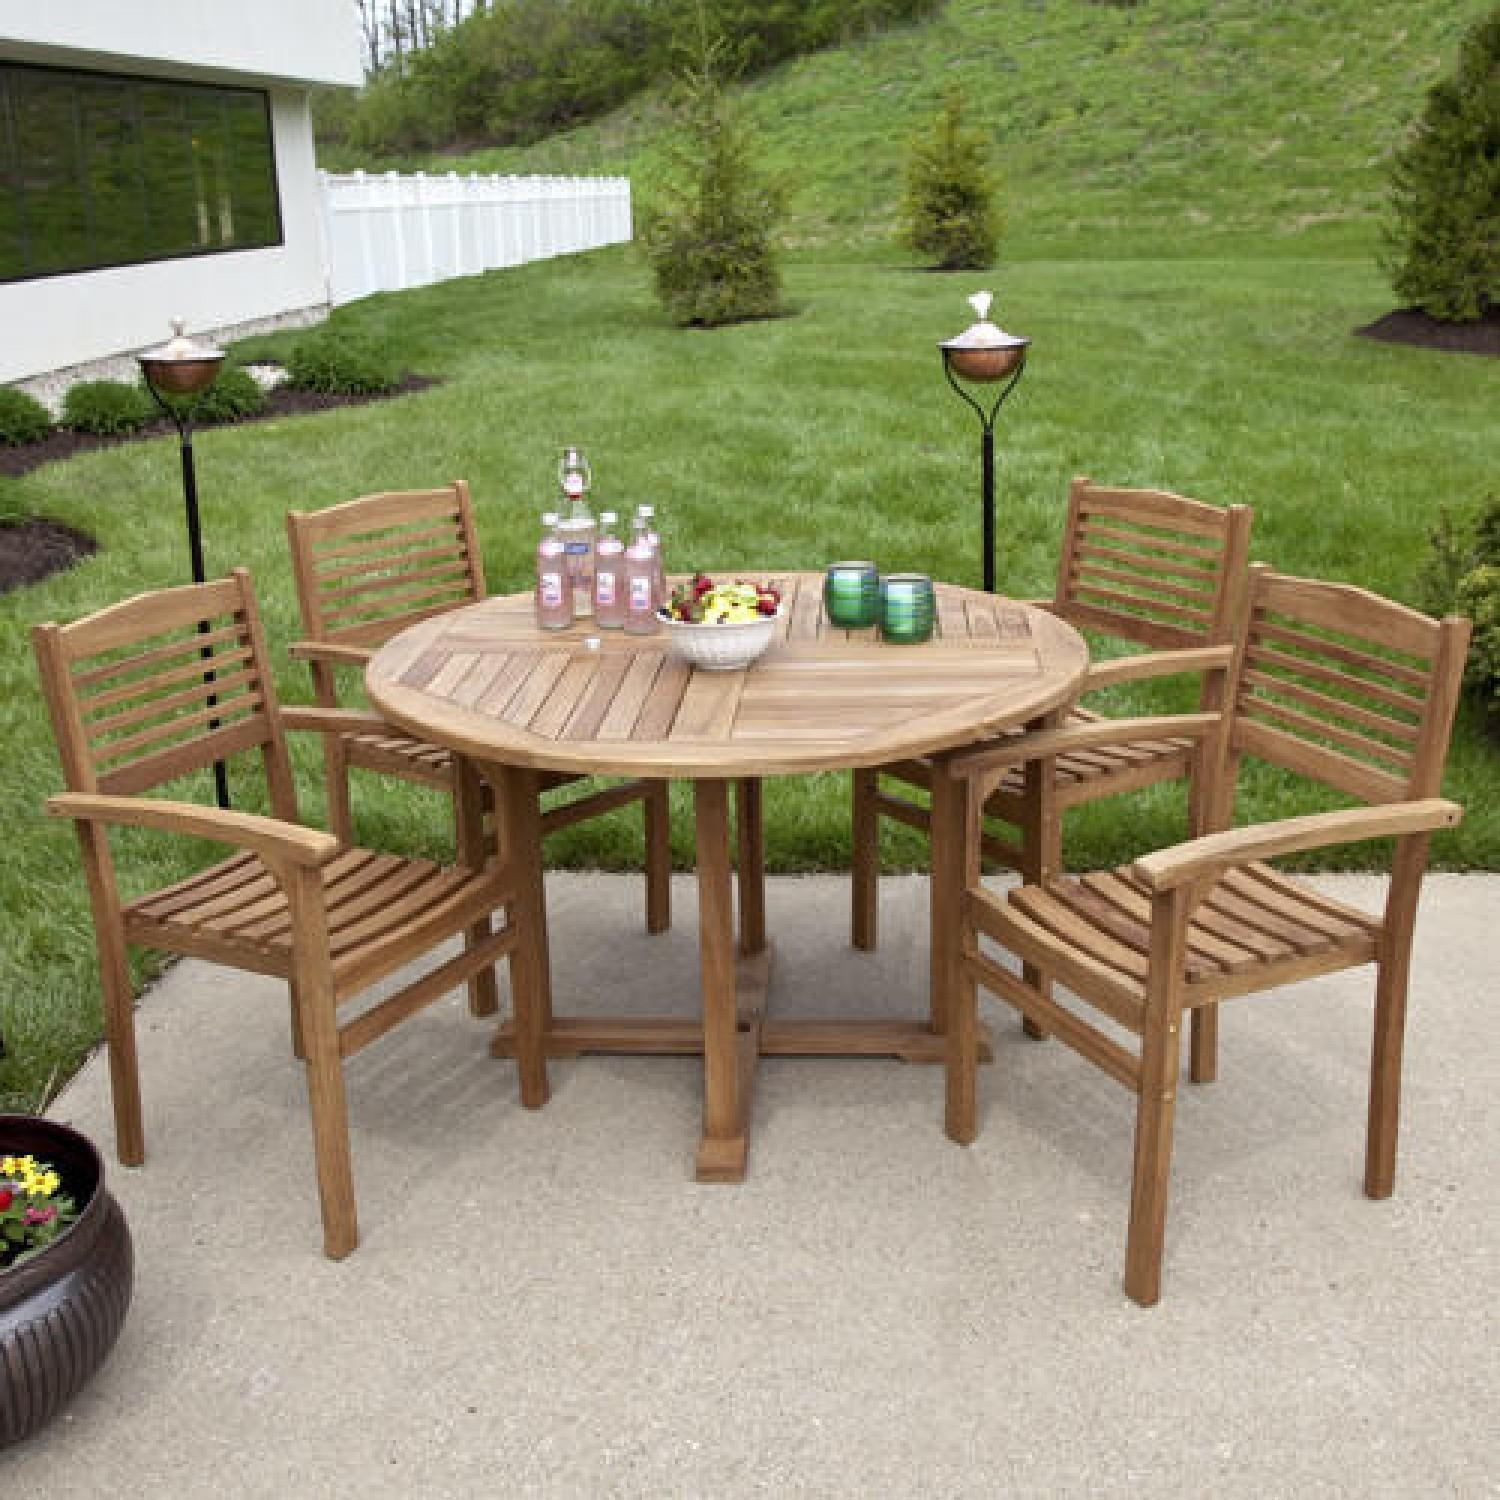 Teak Outdoor Round Dining Table Set Stacking Chairs